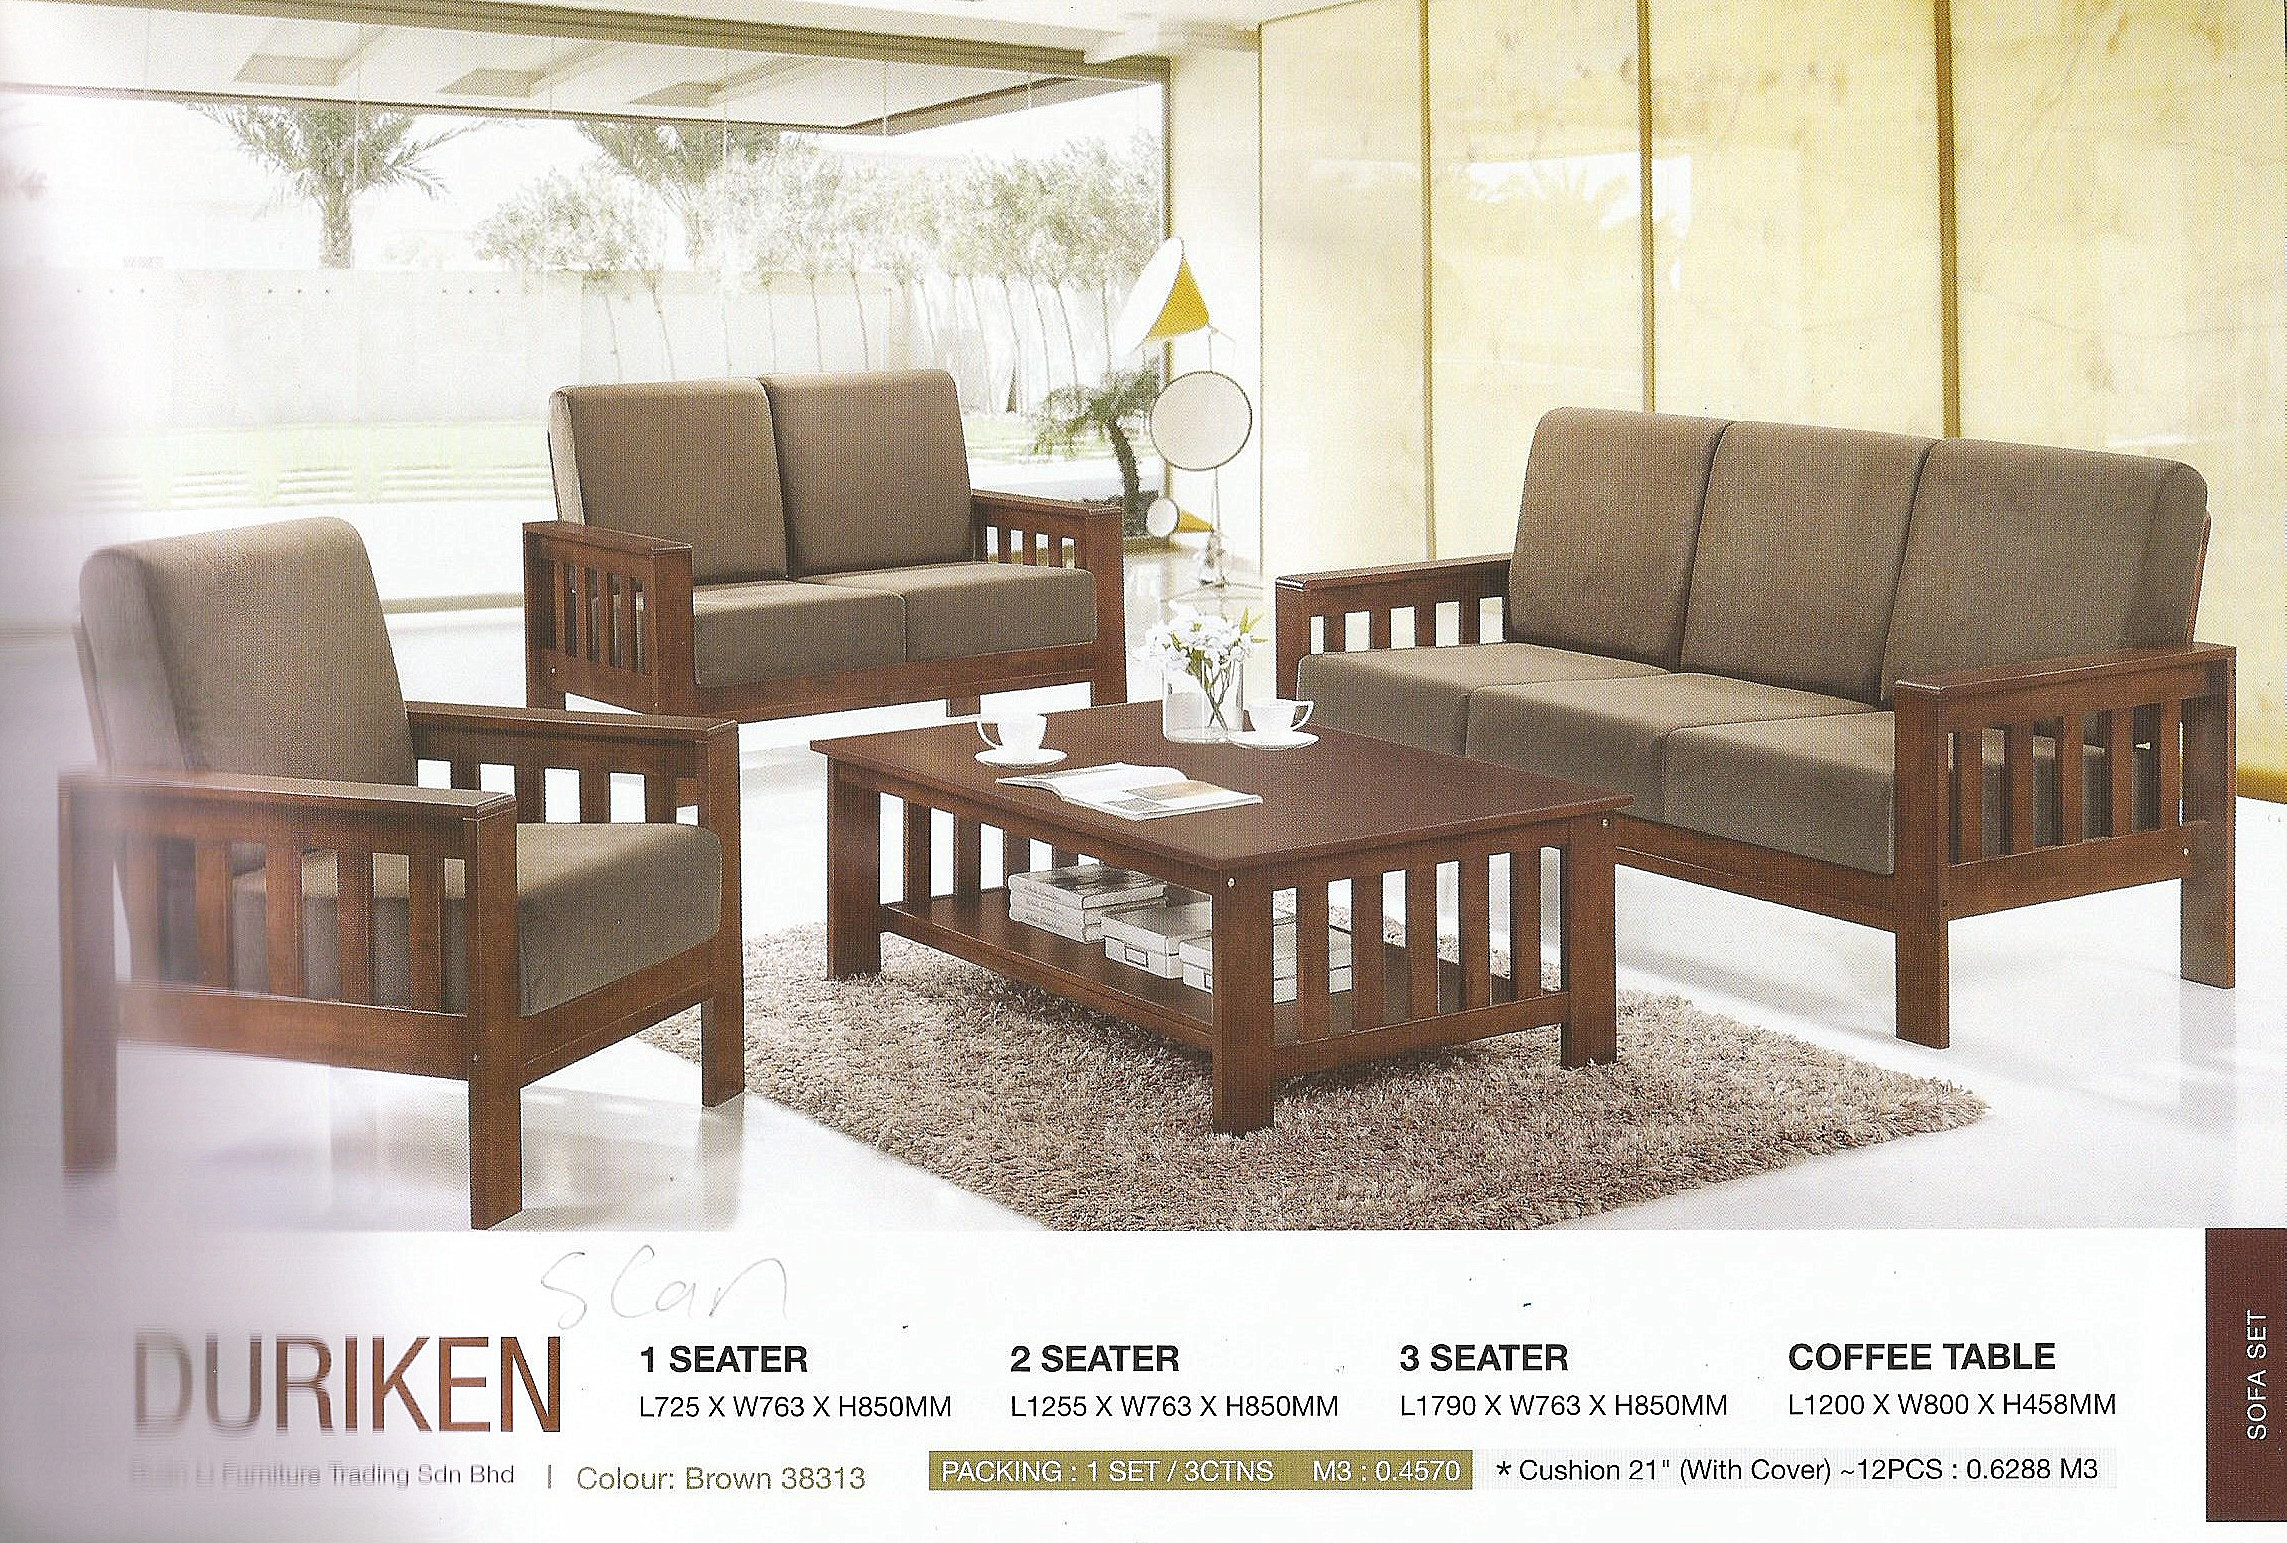 Wooden Sofa Set With Cushion Model